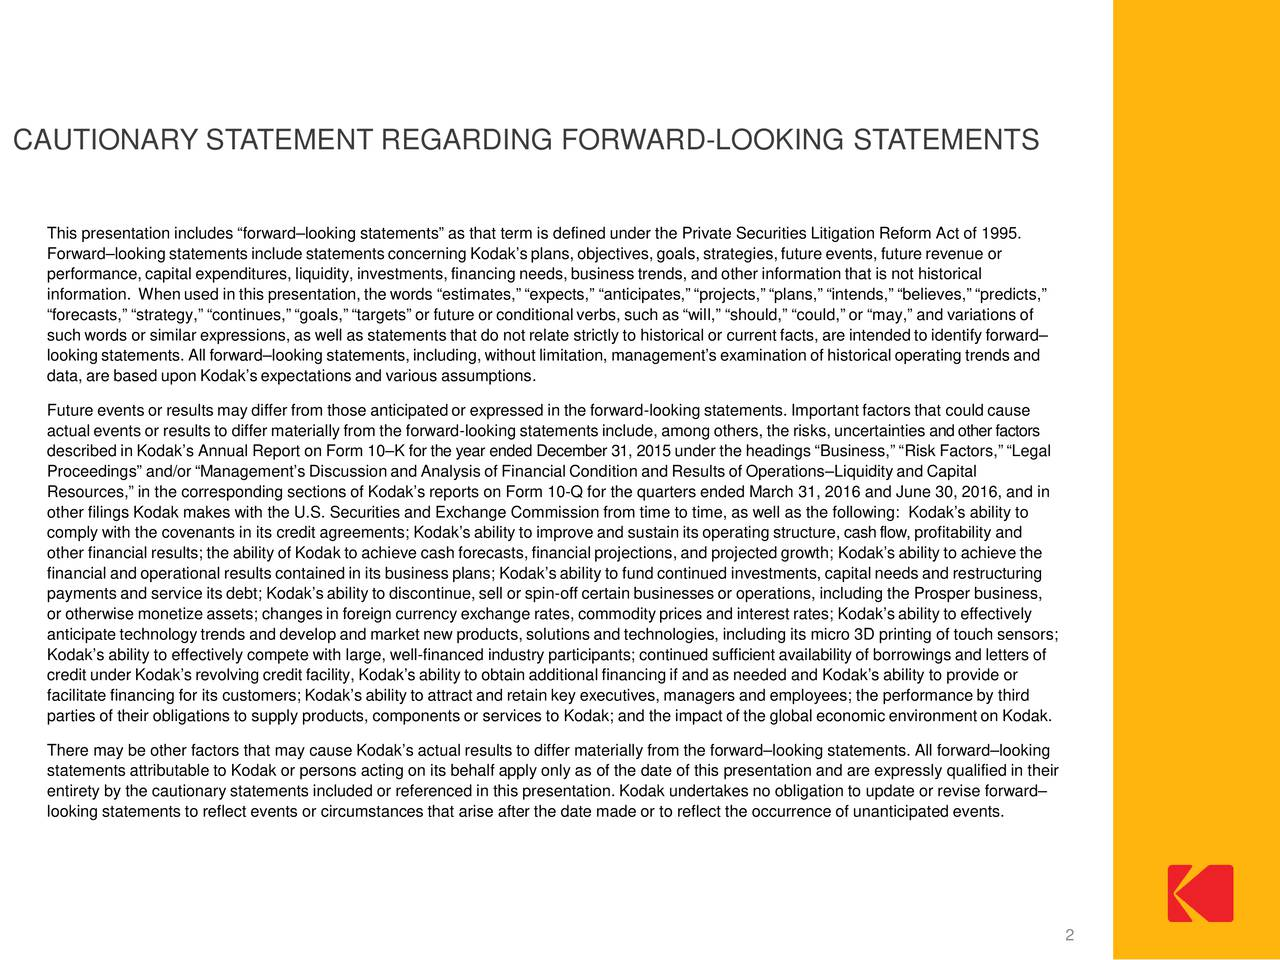 This presentation includes forwardlooking statements as that term is defined under the Private Securities Litigation Reform Act of 1995. Forwardlooking statements include statements concerning Kodaksplans, objectives, goals, strategies,future events, future revenue or performance, capital expenditures, liquidity, investments, financing needs, business trends, and other information that is not historical information. Whenused in this presentation, the words estimates, expects, anticipates, projects, plans, intends, believes, predicts, forecasts, strategy, continues,goals, targets or future or conditional verbs, such as will, should, could, or may, and variations of such words or similar expressions, as well as statements that do not relate strictly to historical or current facts, are intended to identify forward looking statements. All forwardlooking statements, including, without limitation, managements examination of historical operating trends and data, are based upon Kodaks expectations and various assumptions. Future events or results may differ from those anticipated or expressed in the forward-looking statements. Important factors that could cause actual events or results to differ materially from the forward-looking statements include, among others, the risks, uncertainties and other factors described in Kodaks Annual Report on Form 10K for the year ended December31, 2015under the headings Business, Risk Factors, Legal Proceedings and/or Managements Discussionand Analysis of Financial Condition and Results of OperationsLiquidityand Capital Resources, in the corresponding sections of Kodaks reports on Form 10-Q for the quarters ended March 31, 2016 and June 30, 2016, and in other filings Kodak makes with the U.S. Securities and Exchange Commission from time to time, as well as the following: Kodaks ability to comply with the covenants in its credit agreements; Kodaks ability to improve and sustain its operating structure, cash flow,profitability and other fina